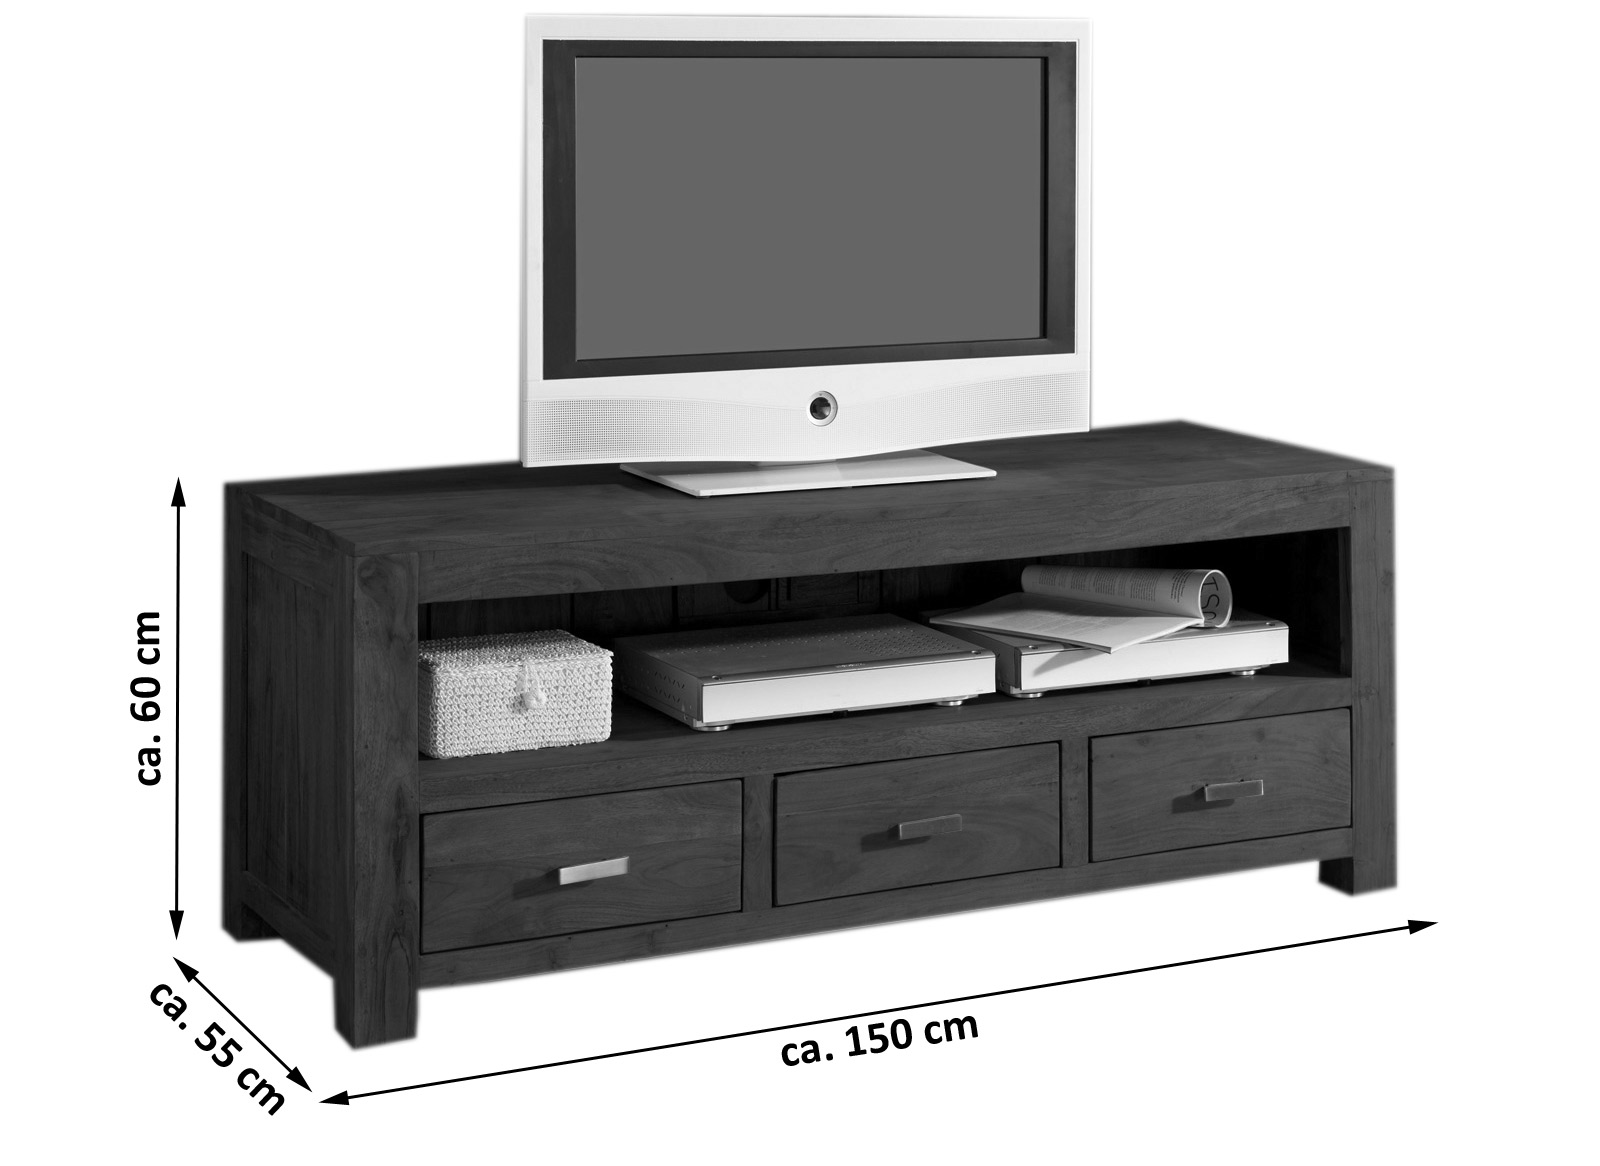 sale lowboard tv board 150 cm akazie massiv tabak timber 6618. Black Bedroom Furniture Sets. Home Design Ideas